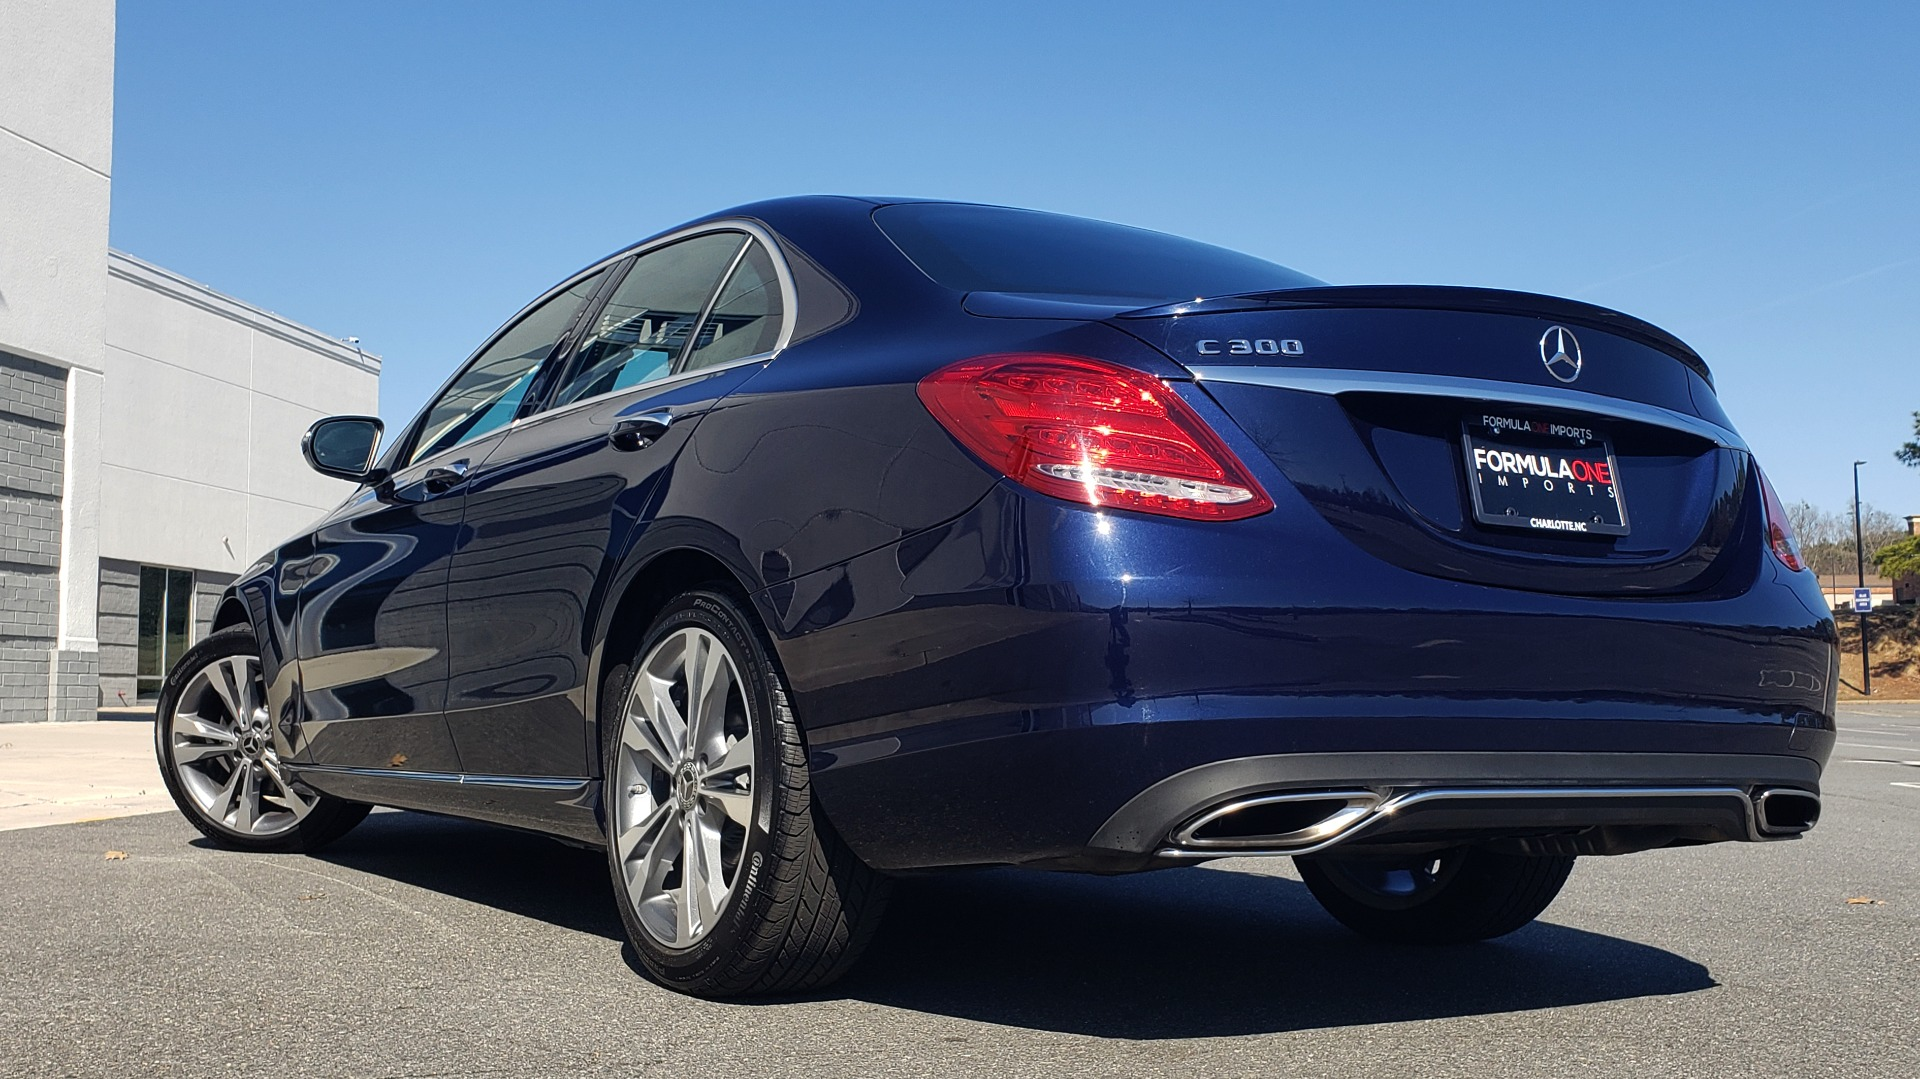 Used 2018 Mercedes-Benz C-CLASS C 300 PREMIUM / SUNROOF / BURMESTER / BSM / REARVIEW for sale $23,995 at Formula Imports in Charlotte NC 28227 2